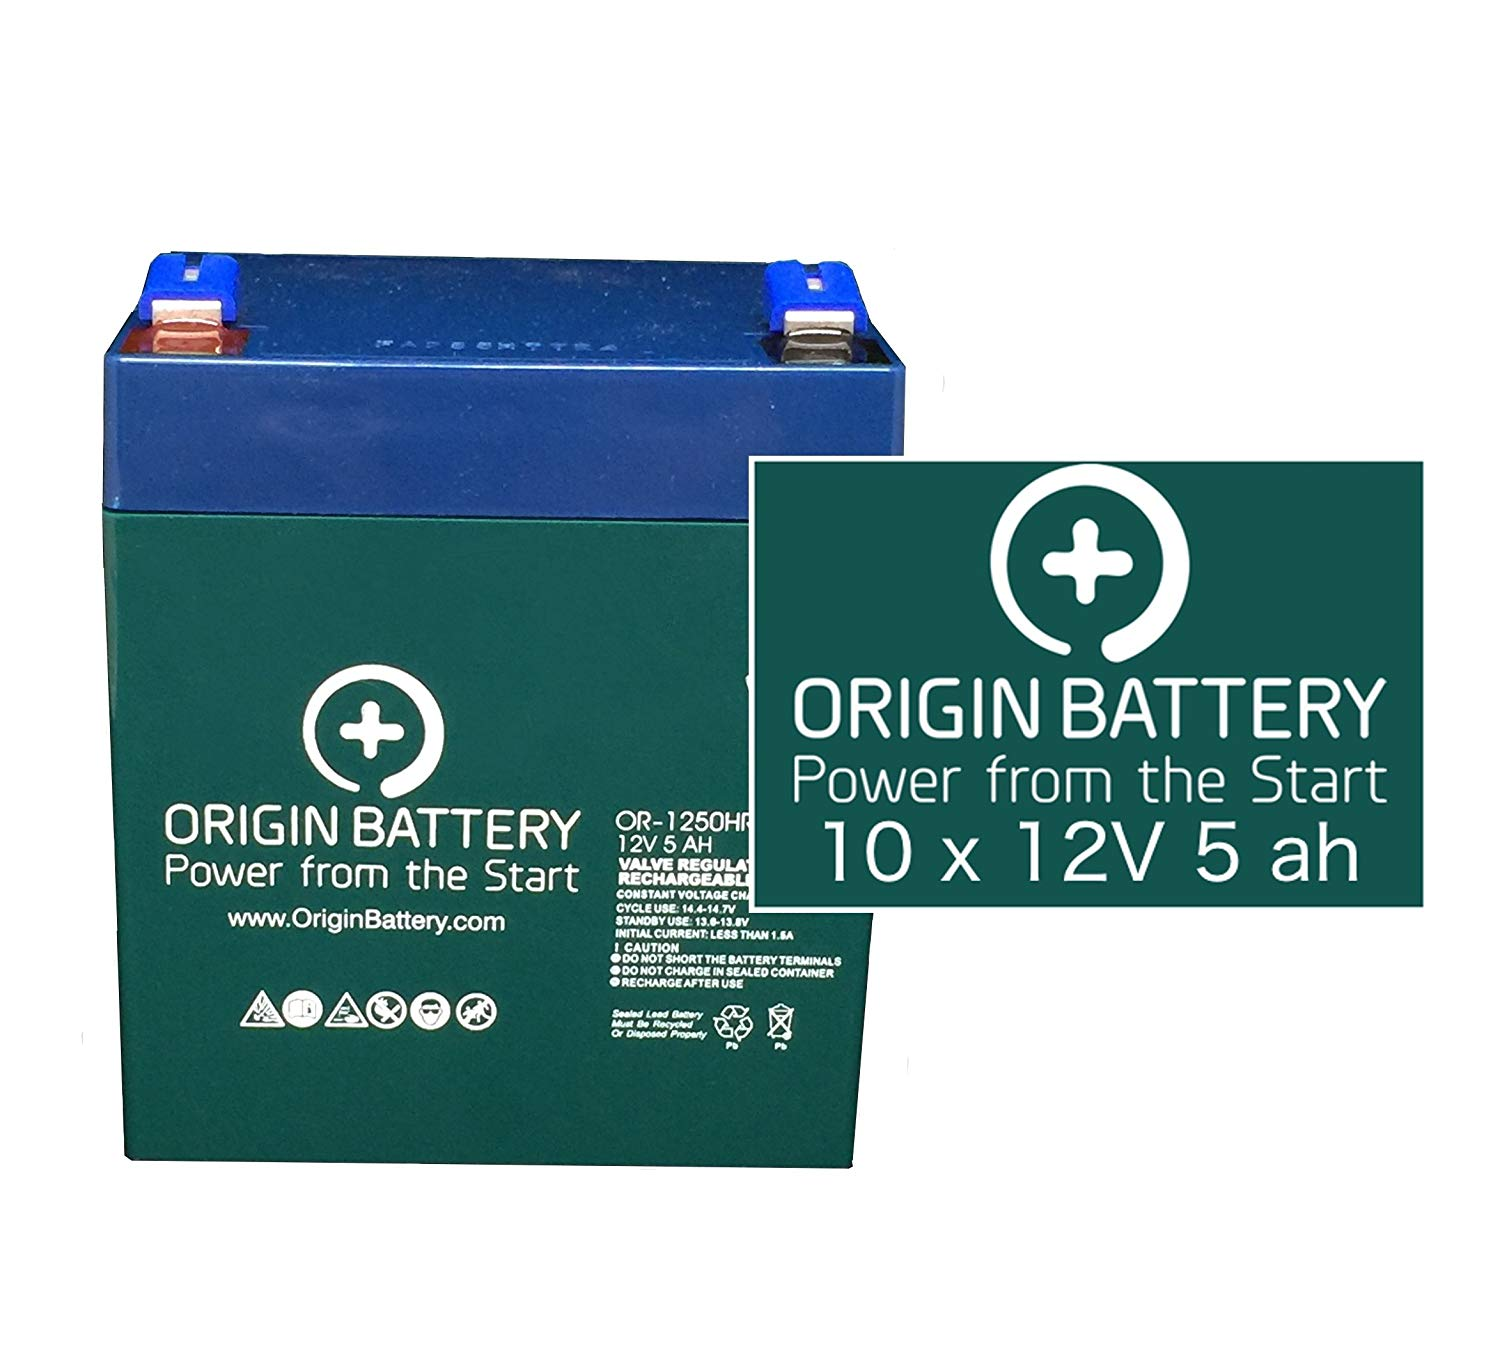 APC SYH2K6RMT-TF3 Battery Replacement Kit